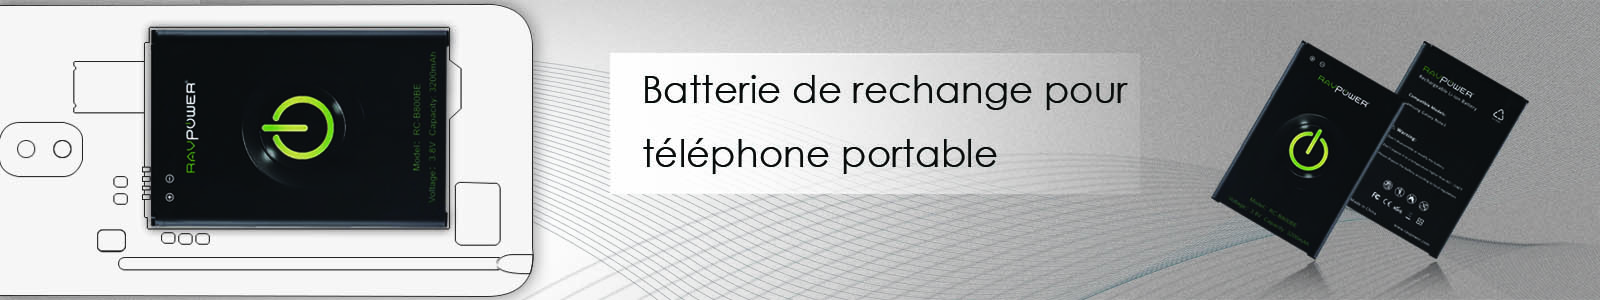 Ravpower batteries de remplacement - Parkside batterie de rechange ...